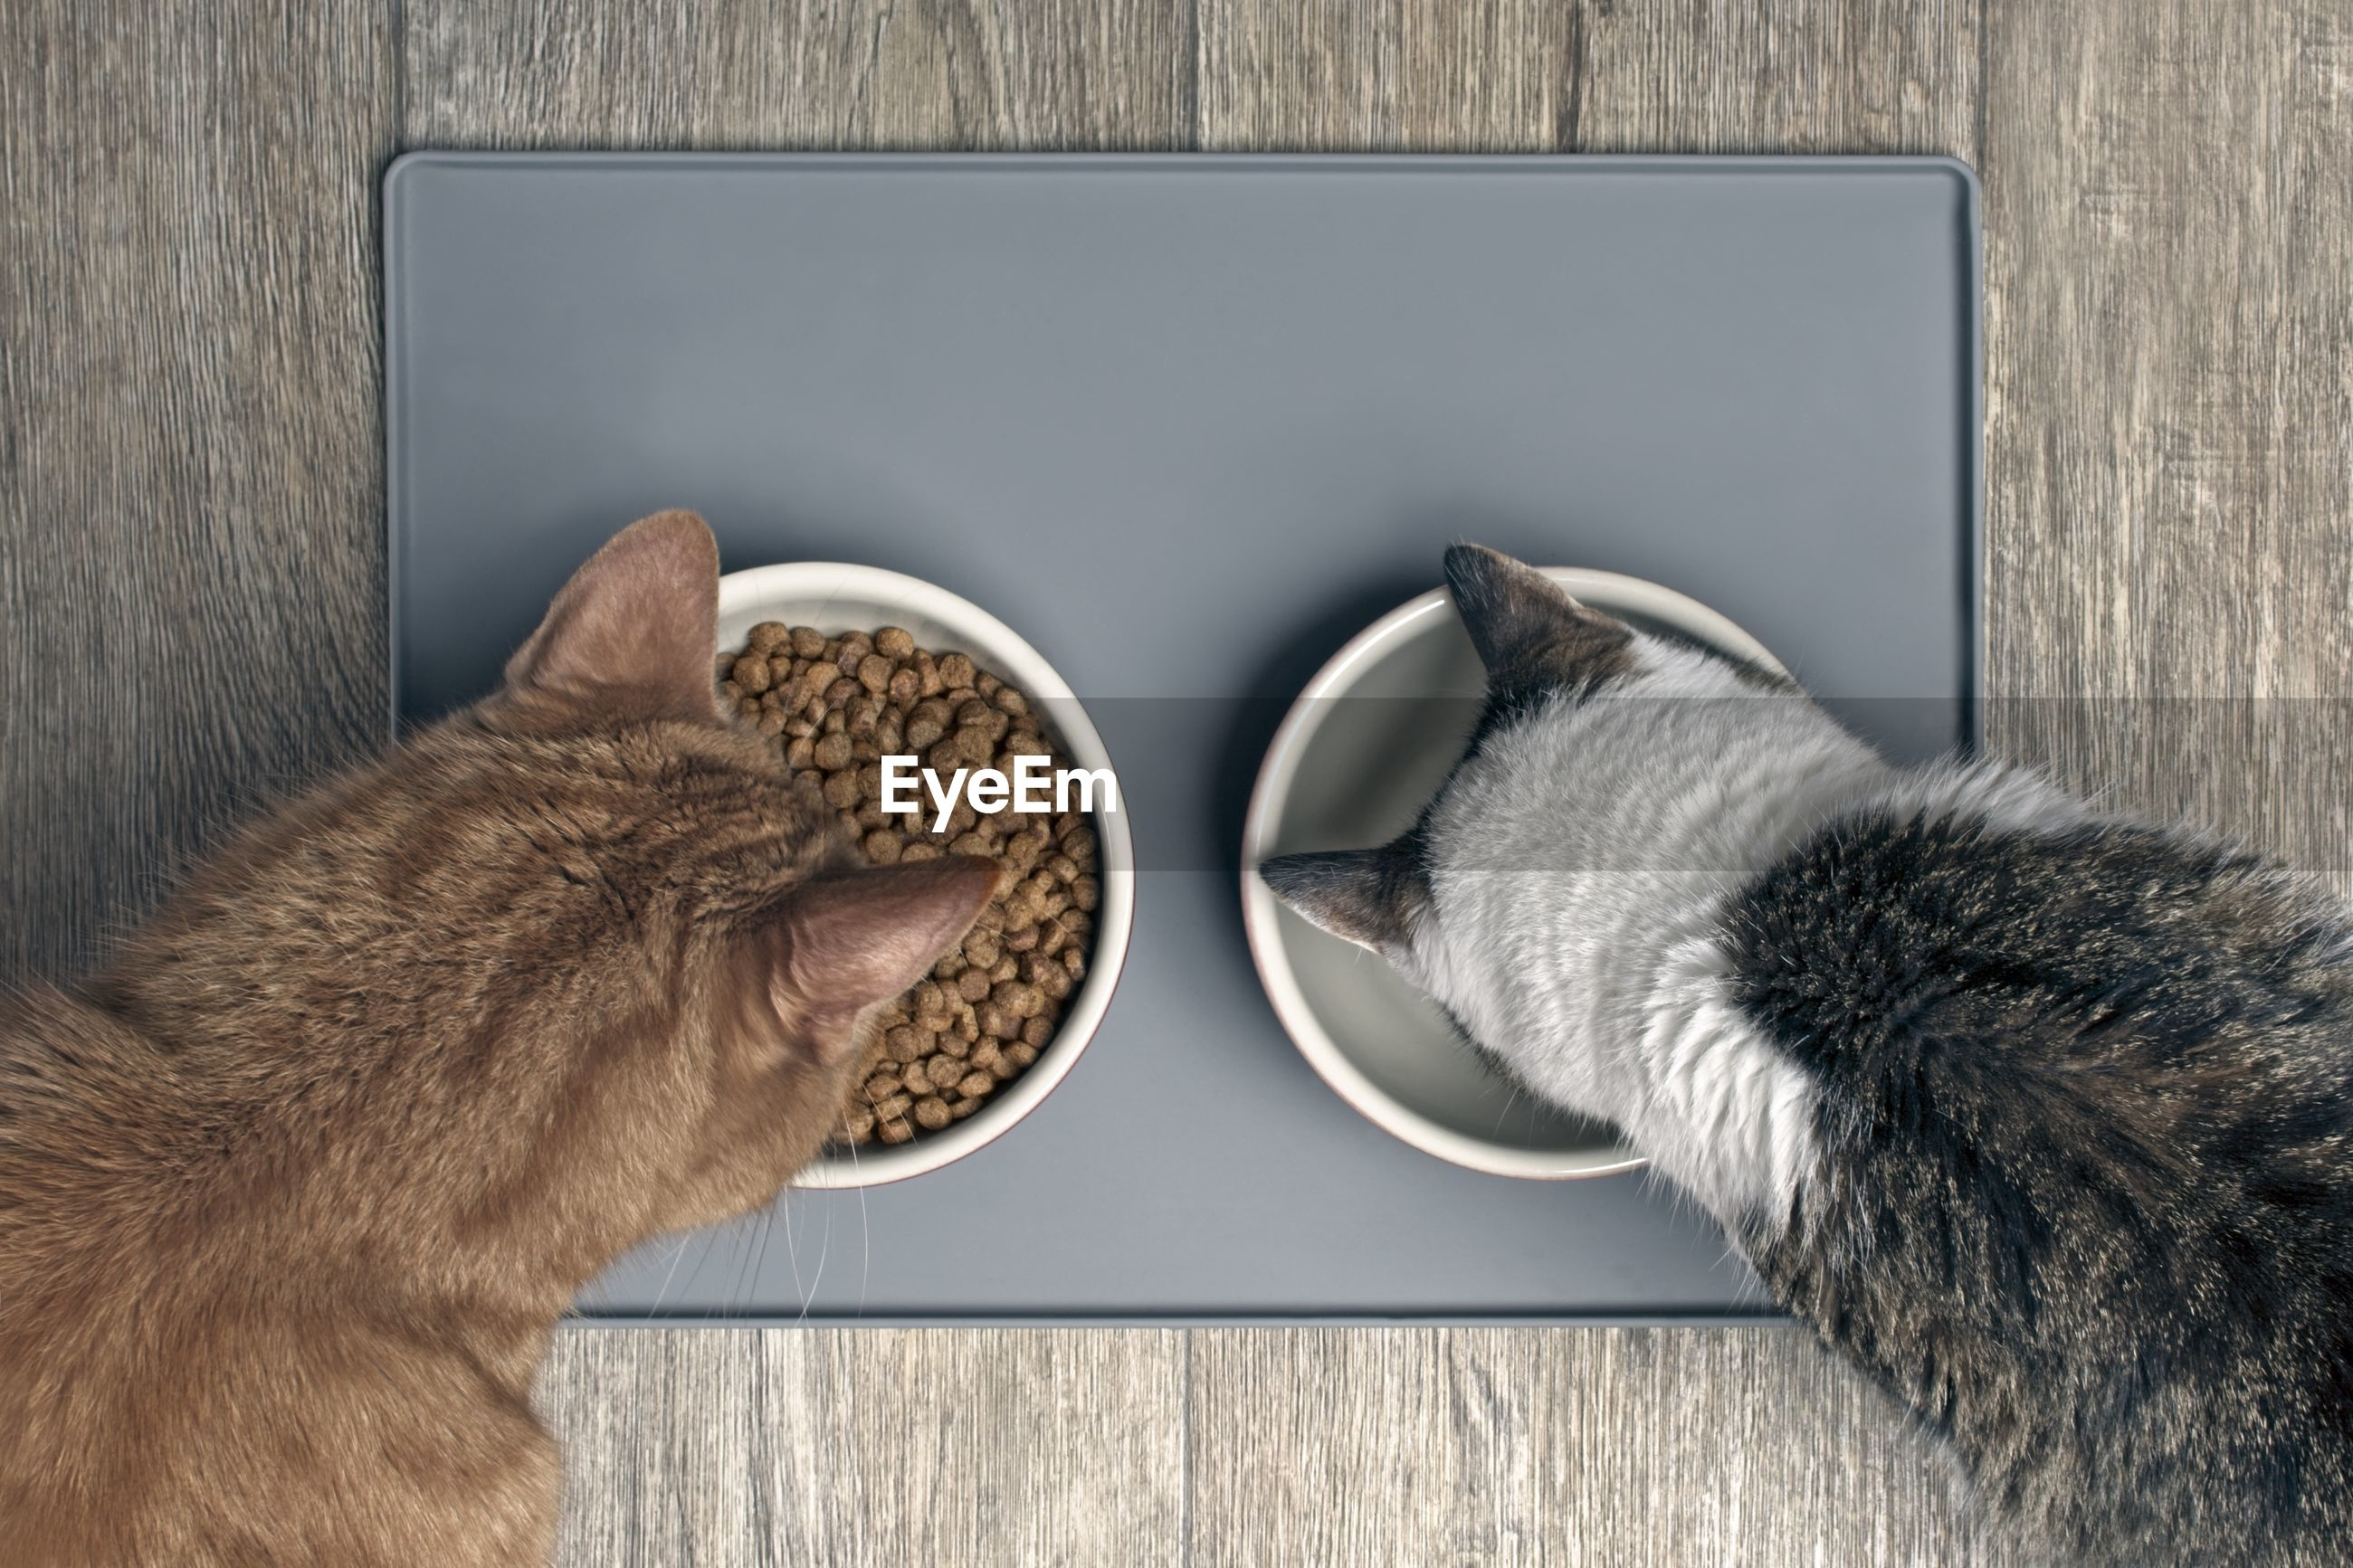 Looking down at two cats eating from a bowl.